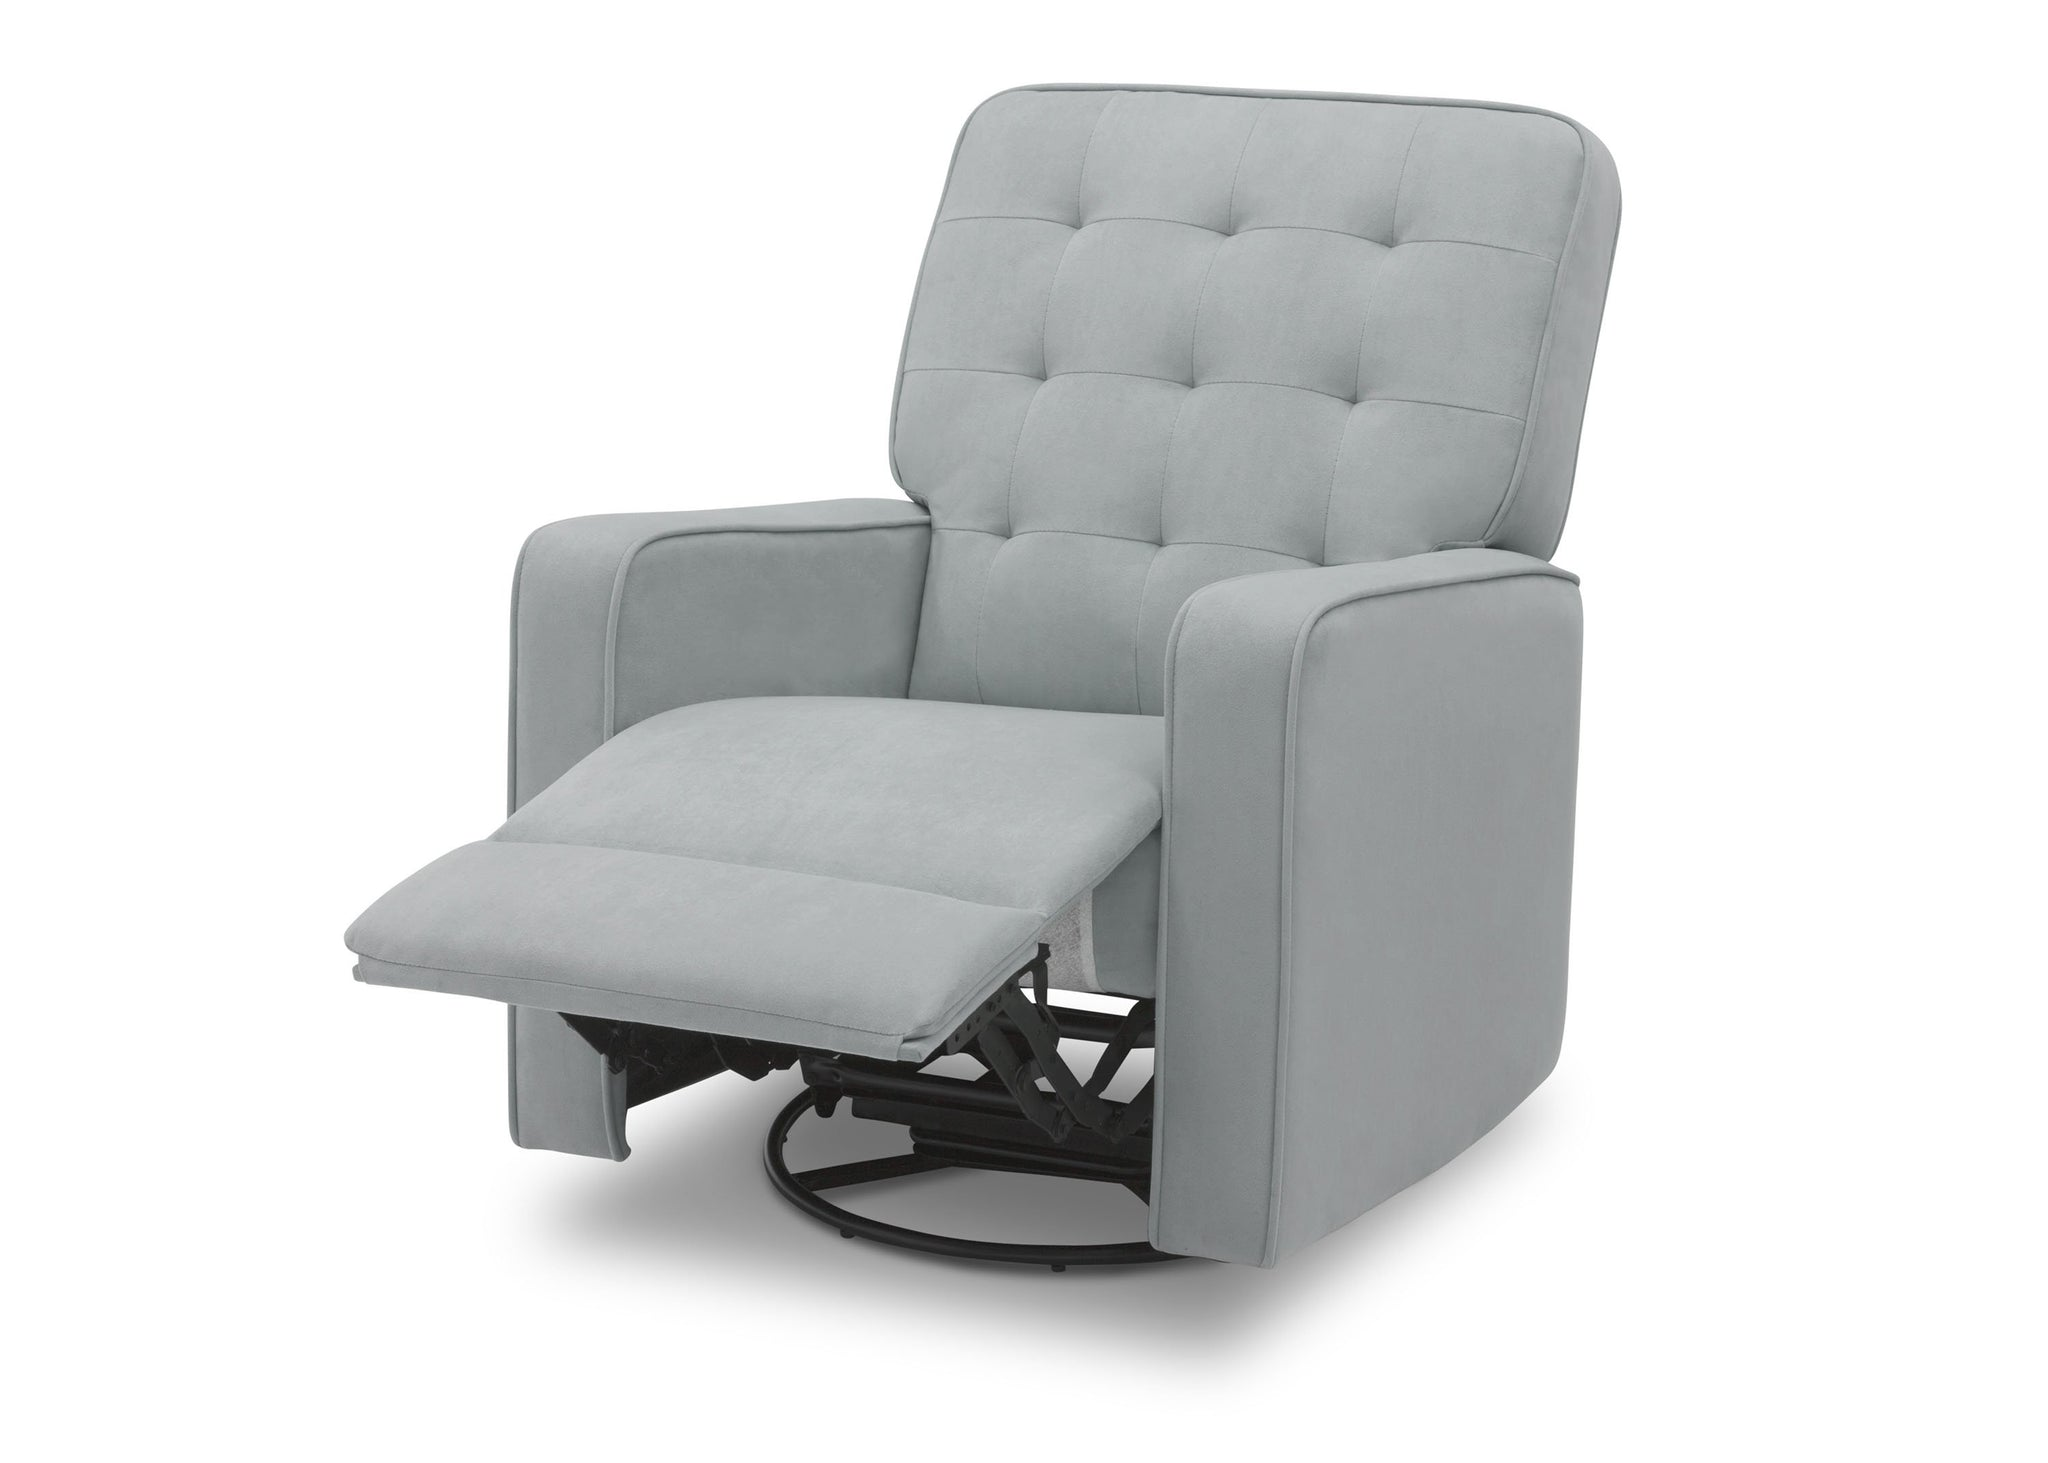 Delta Home Mist (934) Grant Glider Swivel Recliner, Left Reclined Silo View